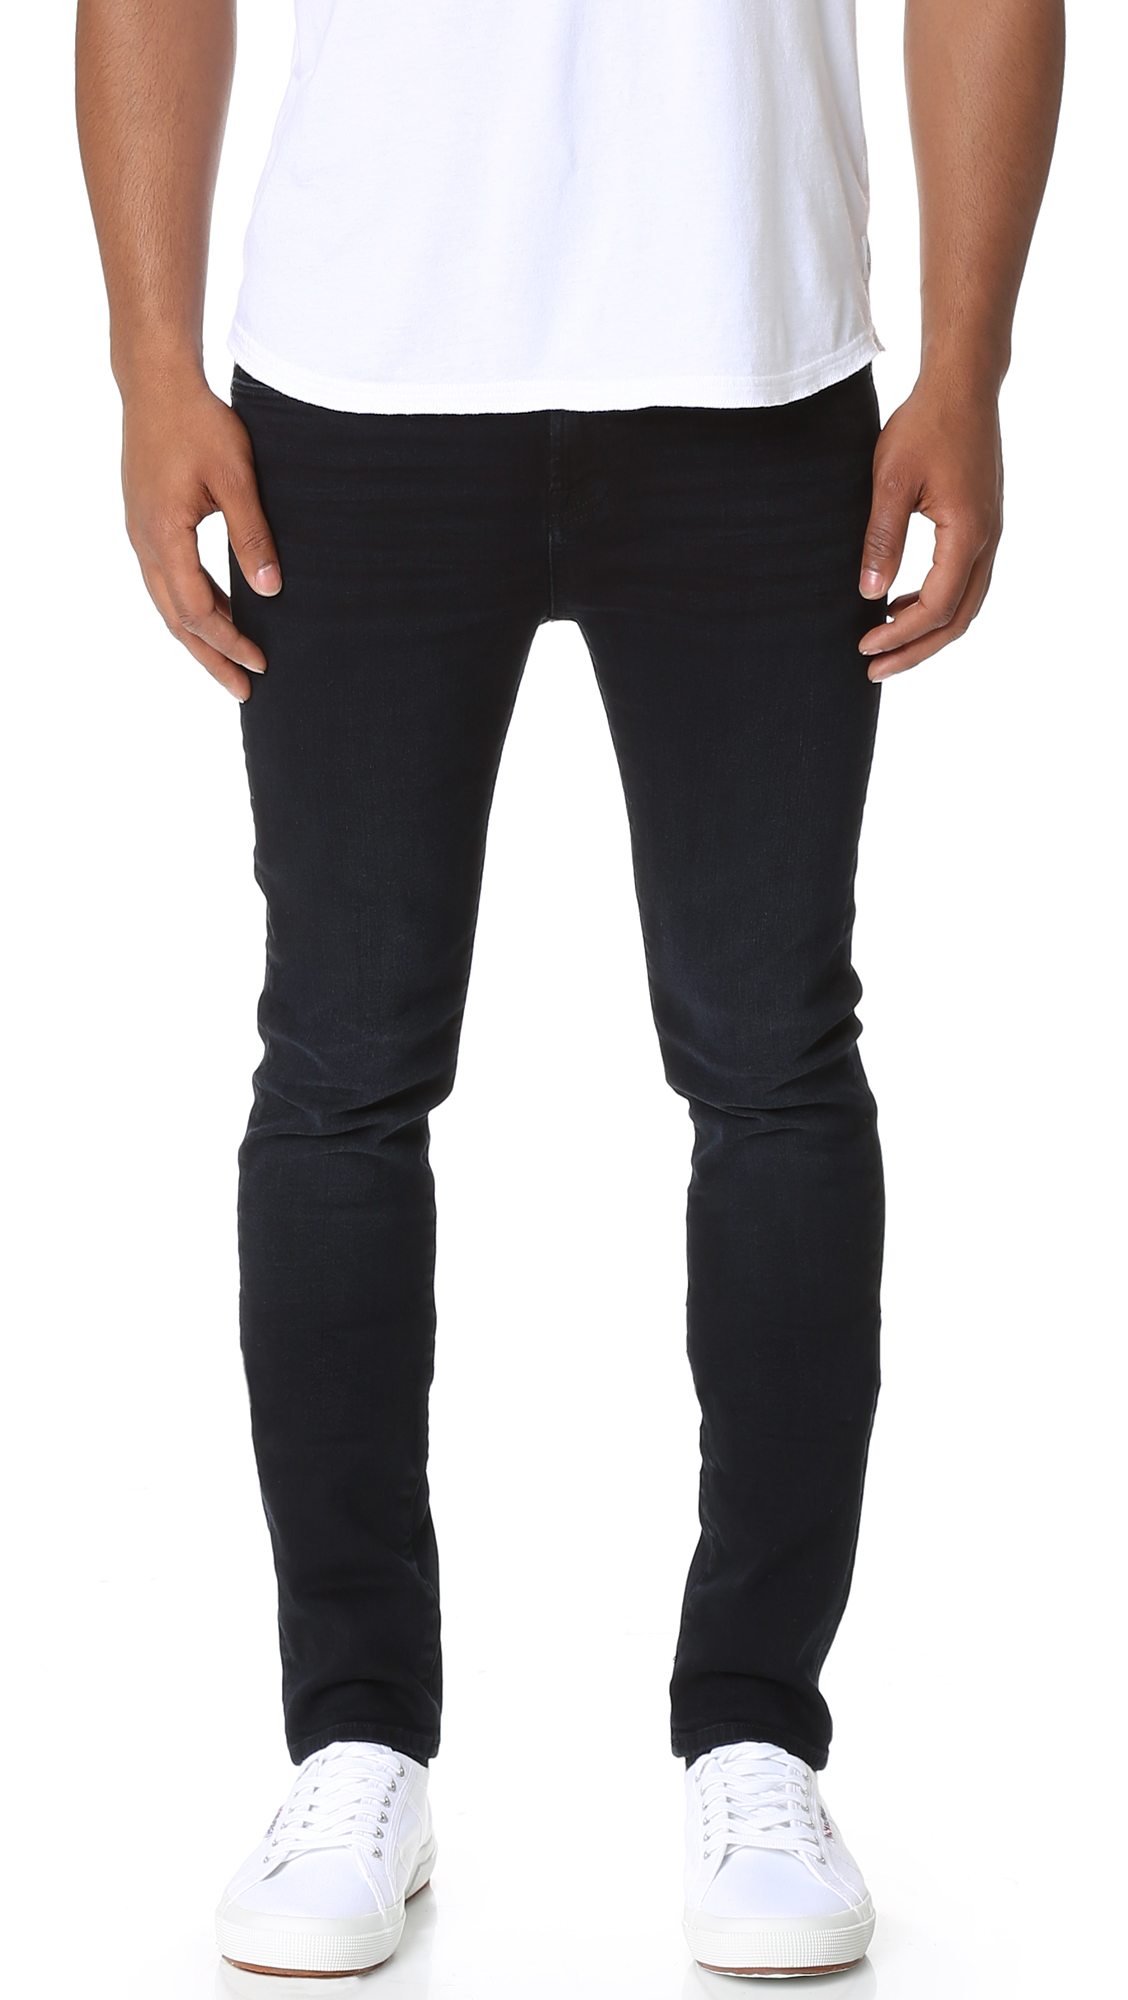 7 for all mankind, men's stretch jeans, skinny jeans, faded black denim, tapered jeans